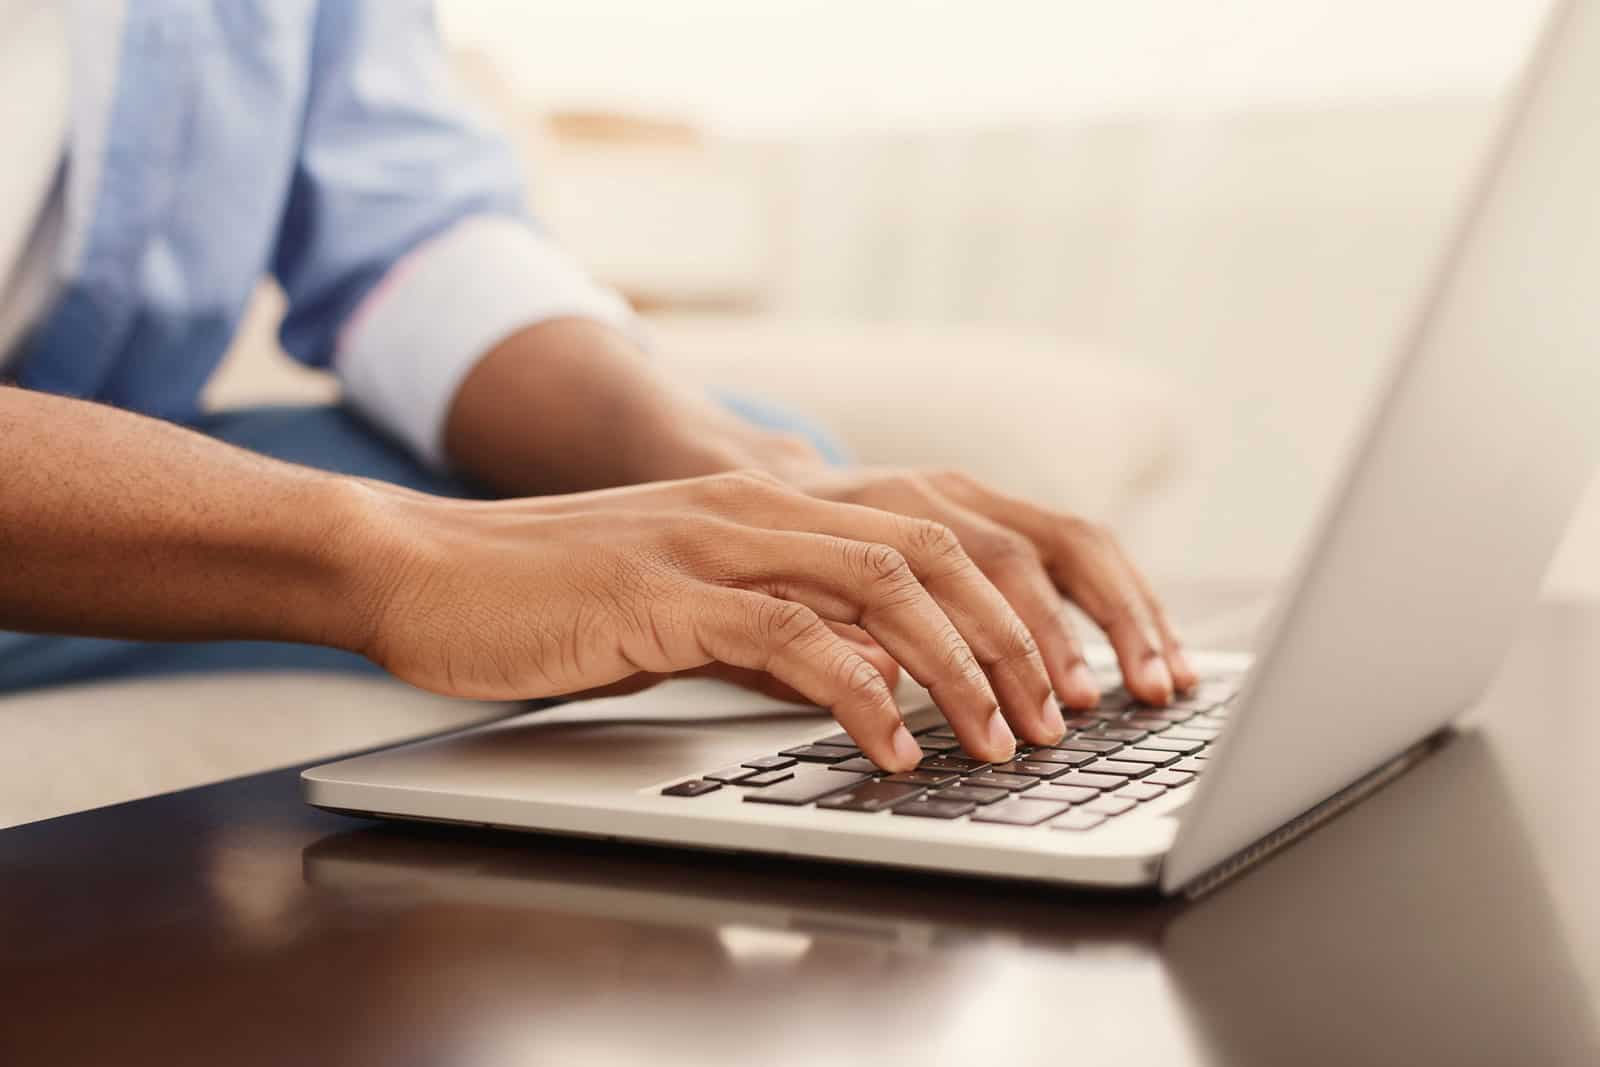 Business professional typing on laptop